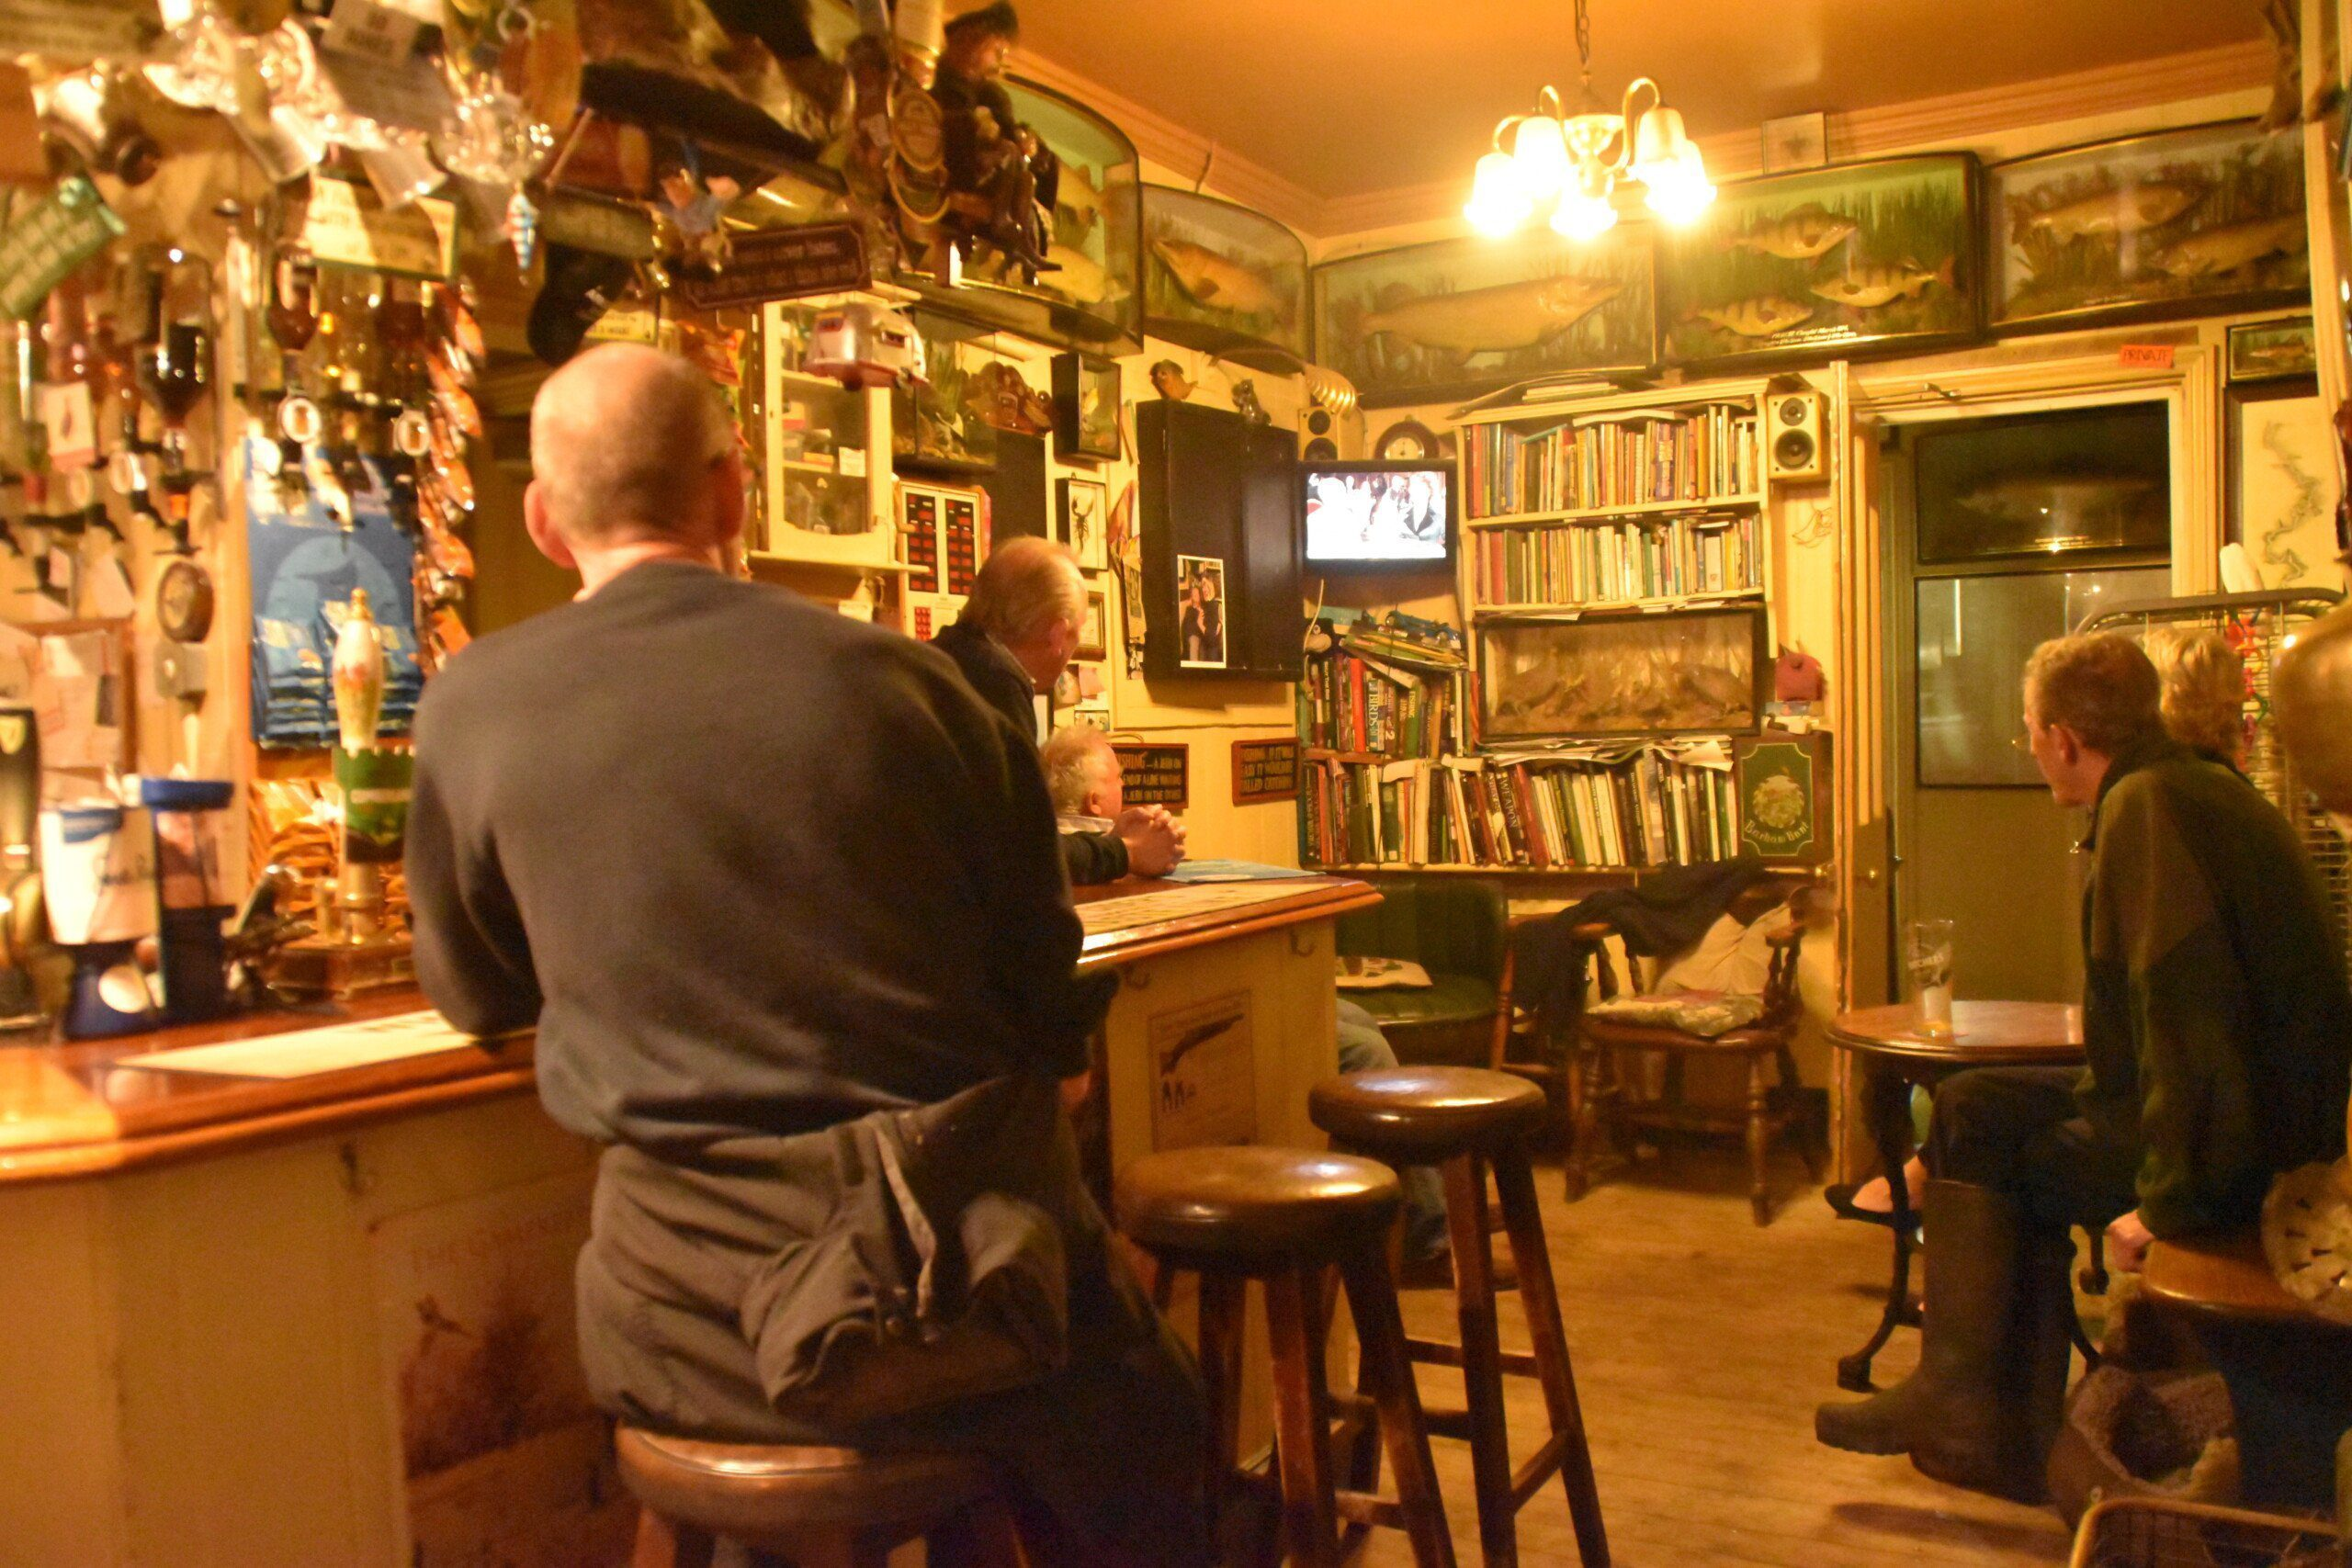 Two regulars and the landlord of The Flowerpot pub at Aston watching the television